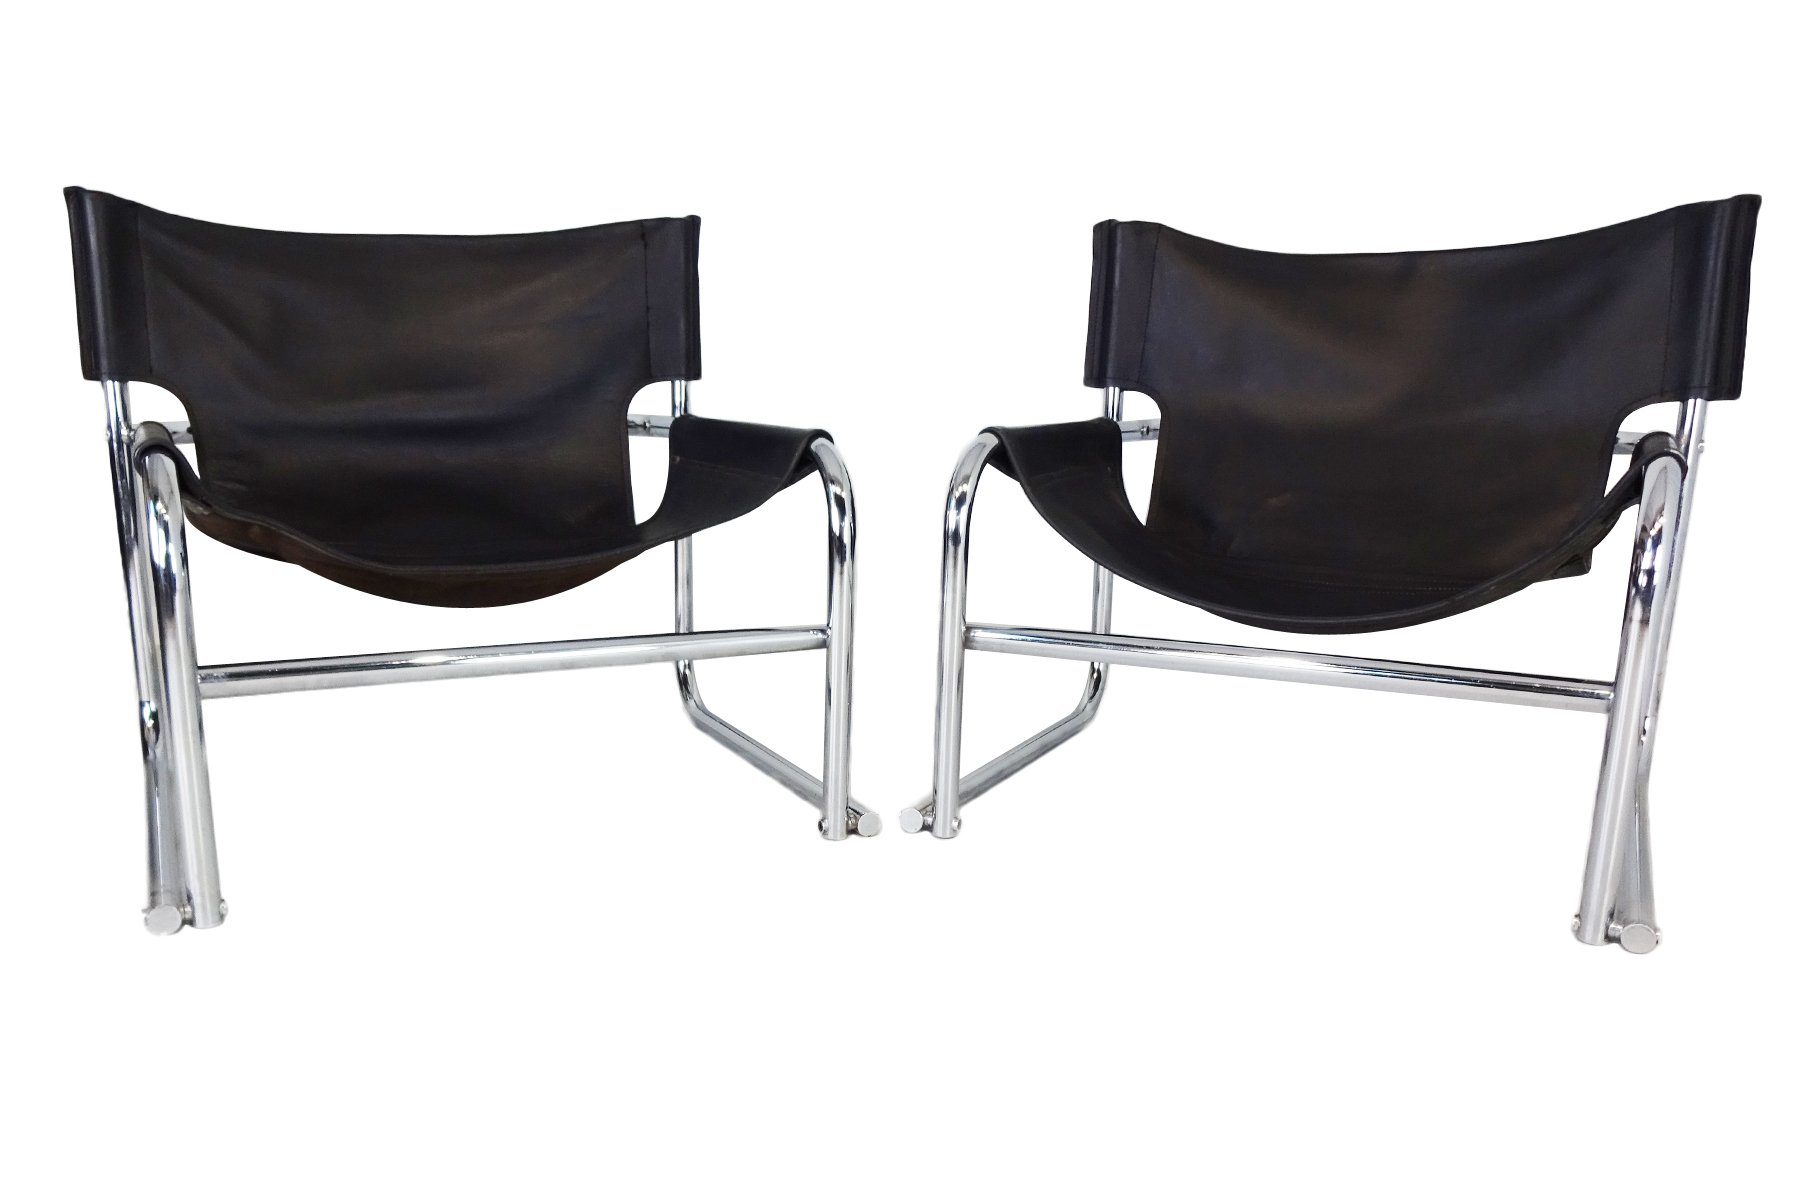 leather sling chairs desk chair no rollers t1 black by rodney kinsman for omk 1969 set of 2